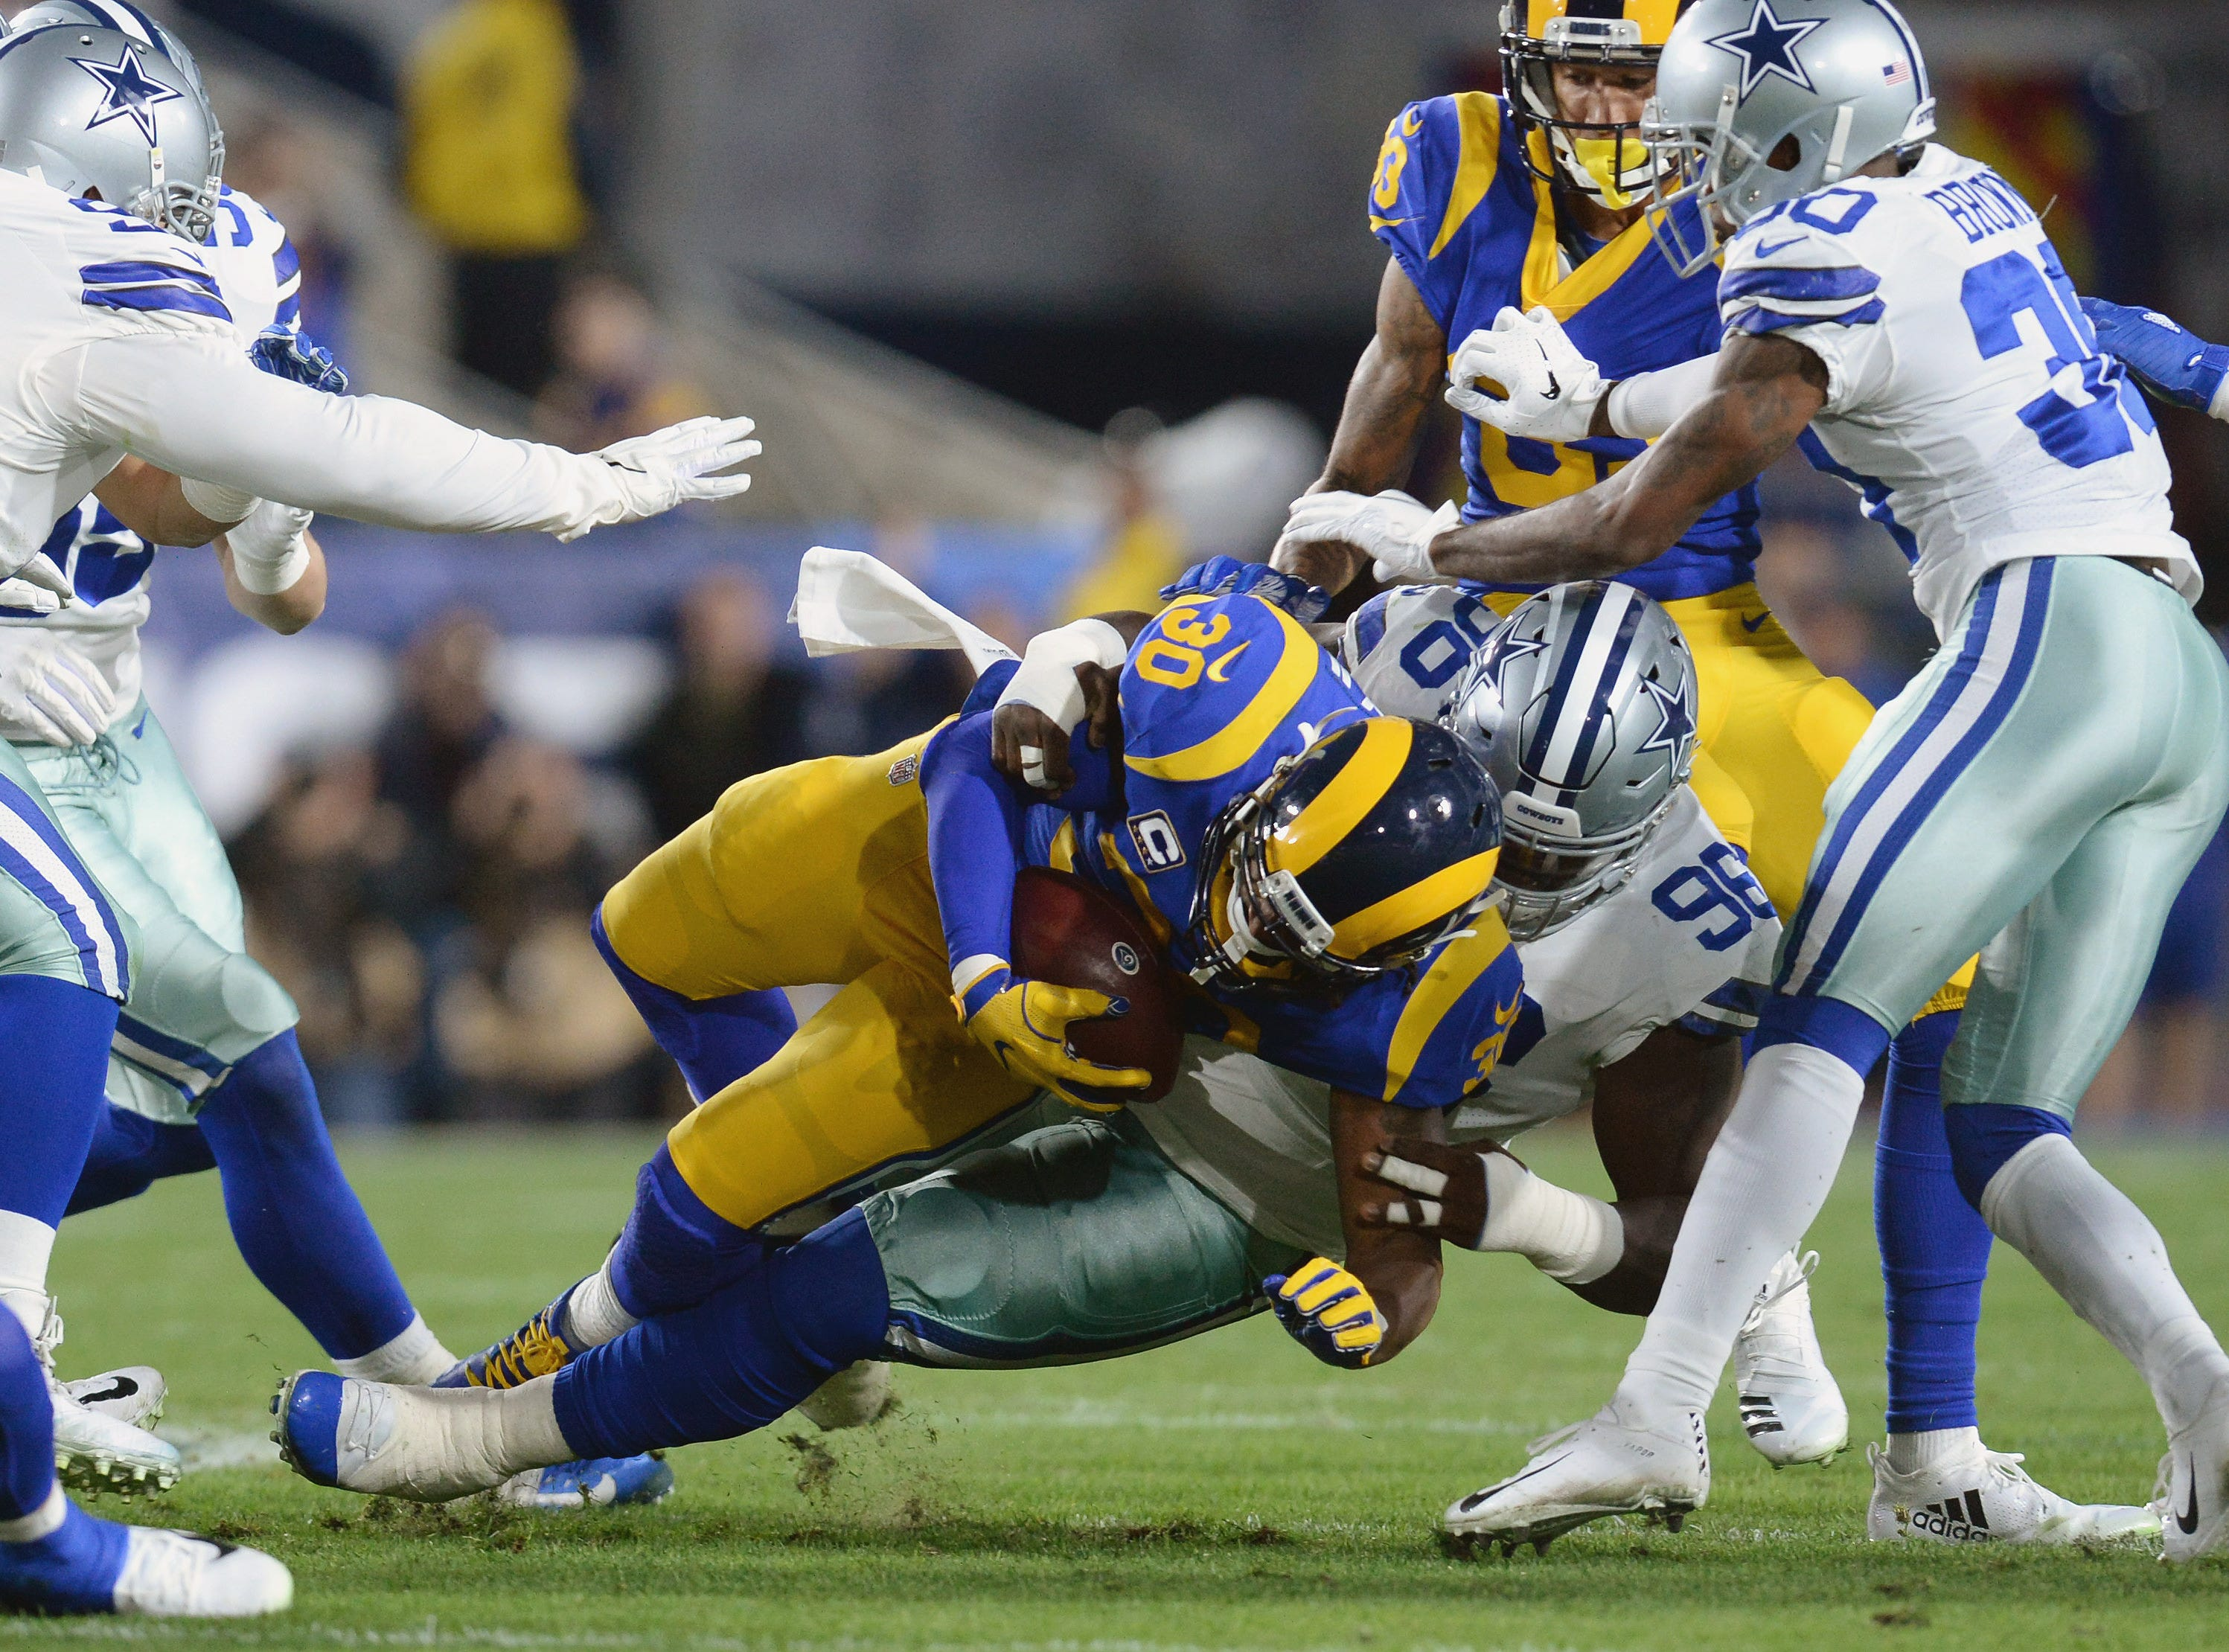 Dallas Cowboys defensive tackle Maliek Collins (96) tackles Los Angeles Rams running back Todd Gurley (30) in the first quarter at the Los Angeles Memorial Coliseum.